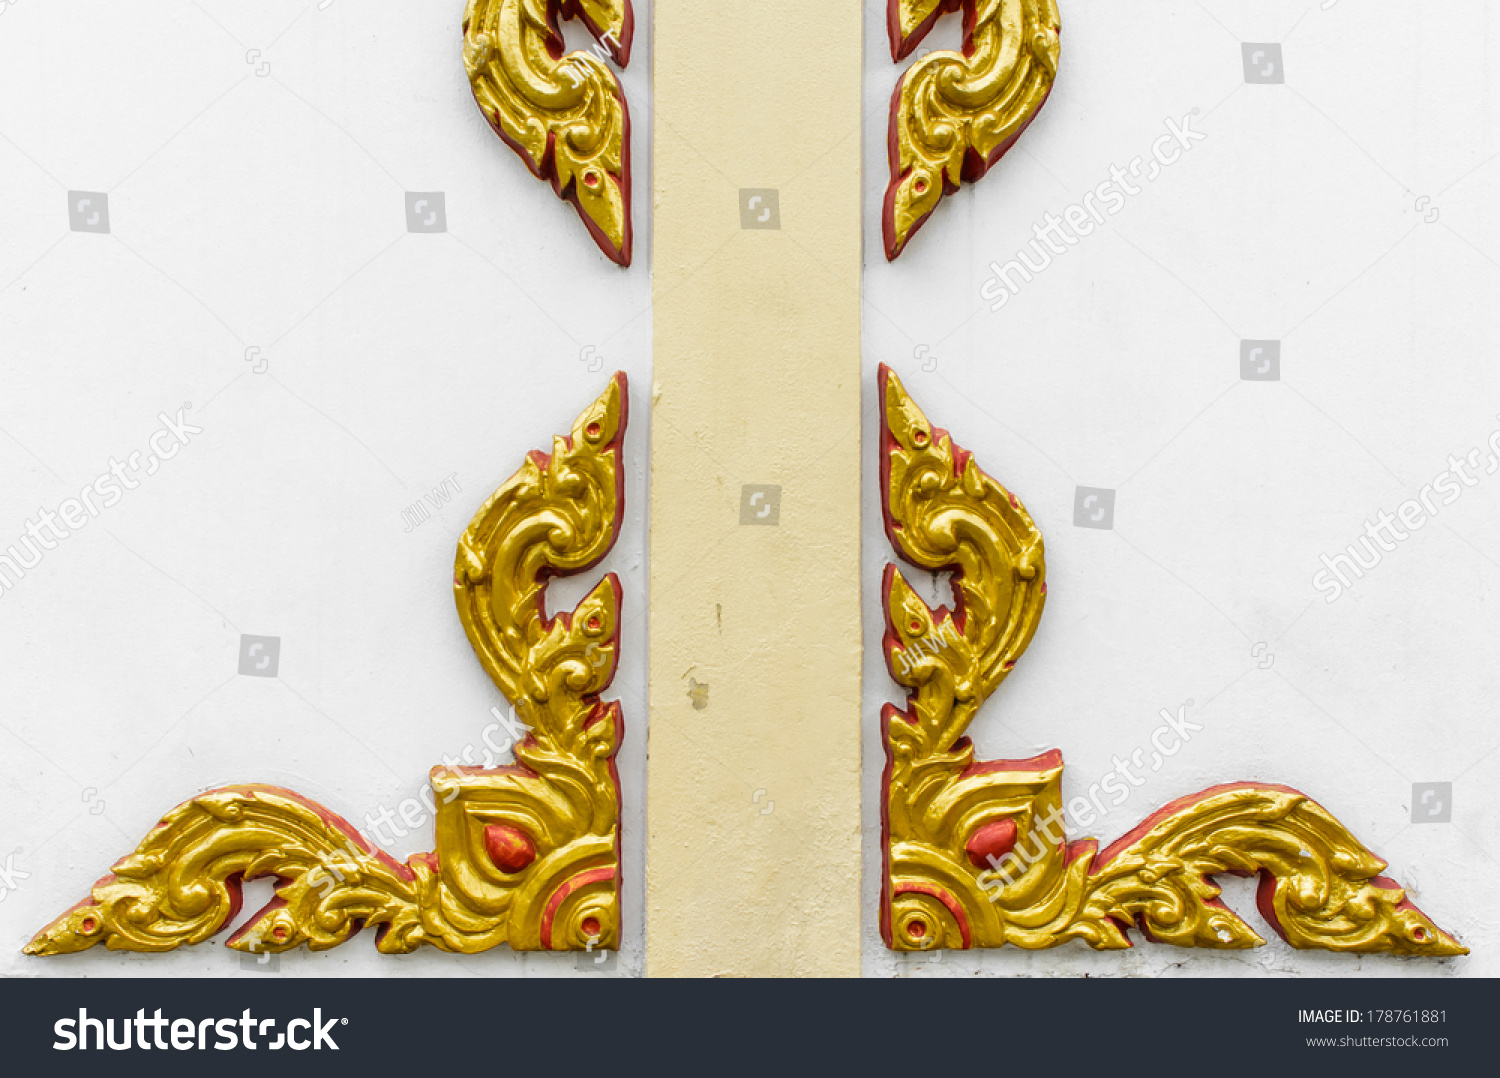 Abstract Old High Relief Golden Red Stock Photo 178761881 - Shutterstock